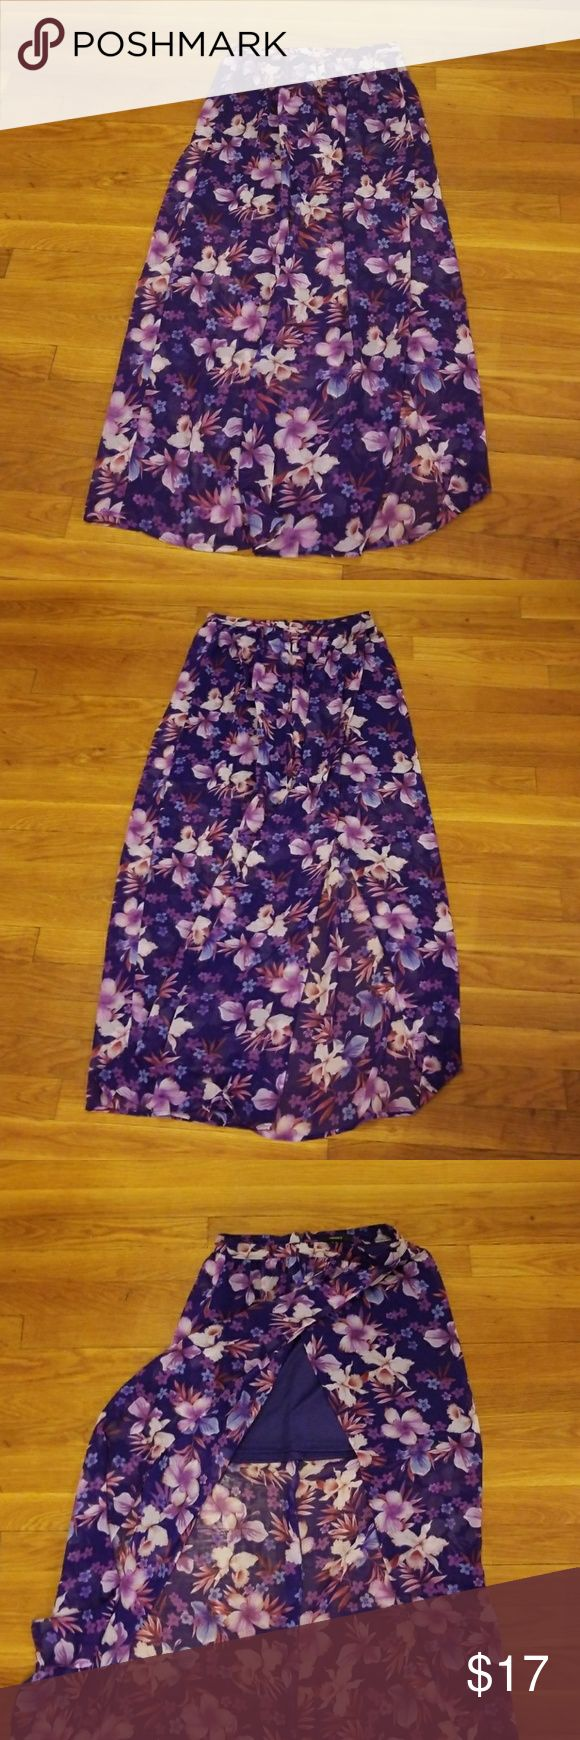 """F21 Maxi Floral Print Skirt Cute Maxi purple floral print skirt with a sarong style look. Has a dark purple lined mini skirt. Zippers in the back and hooks as well. Great for vacation or tropical getaways  38"""" in length Forever 21 Skirts Maxi"""